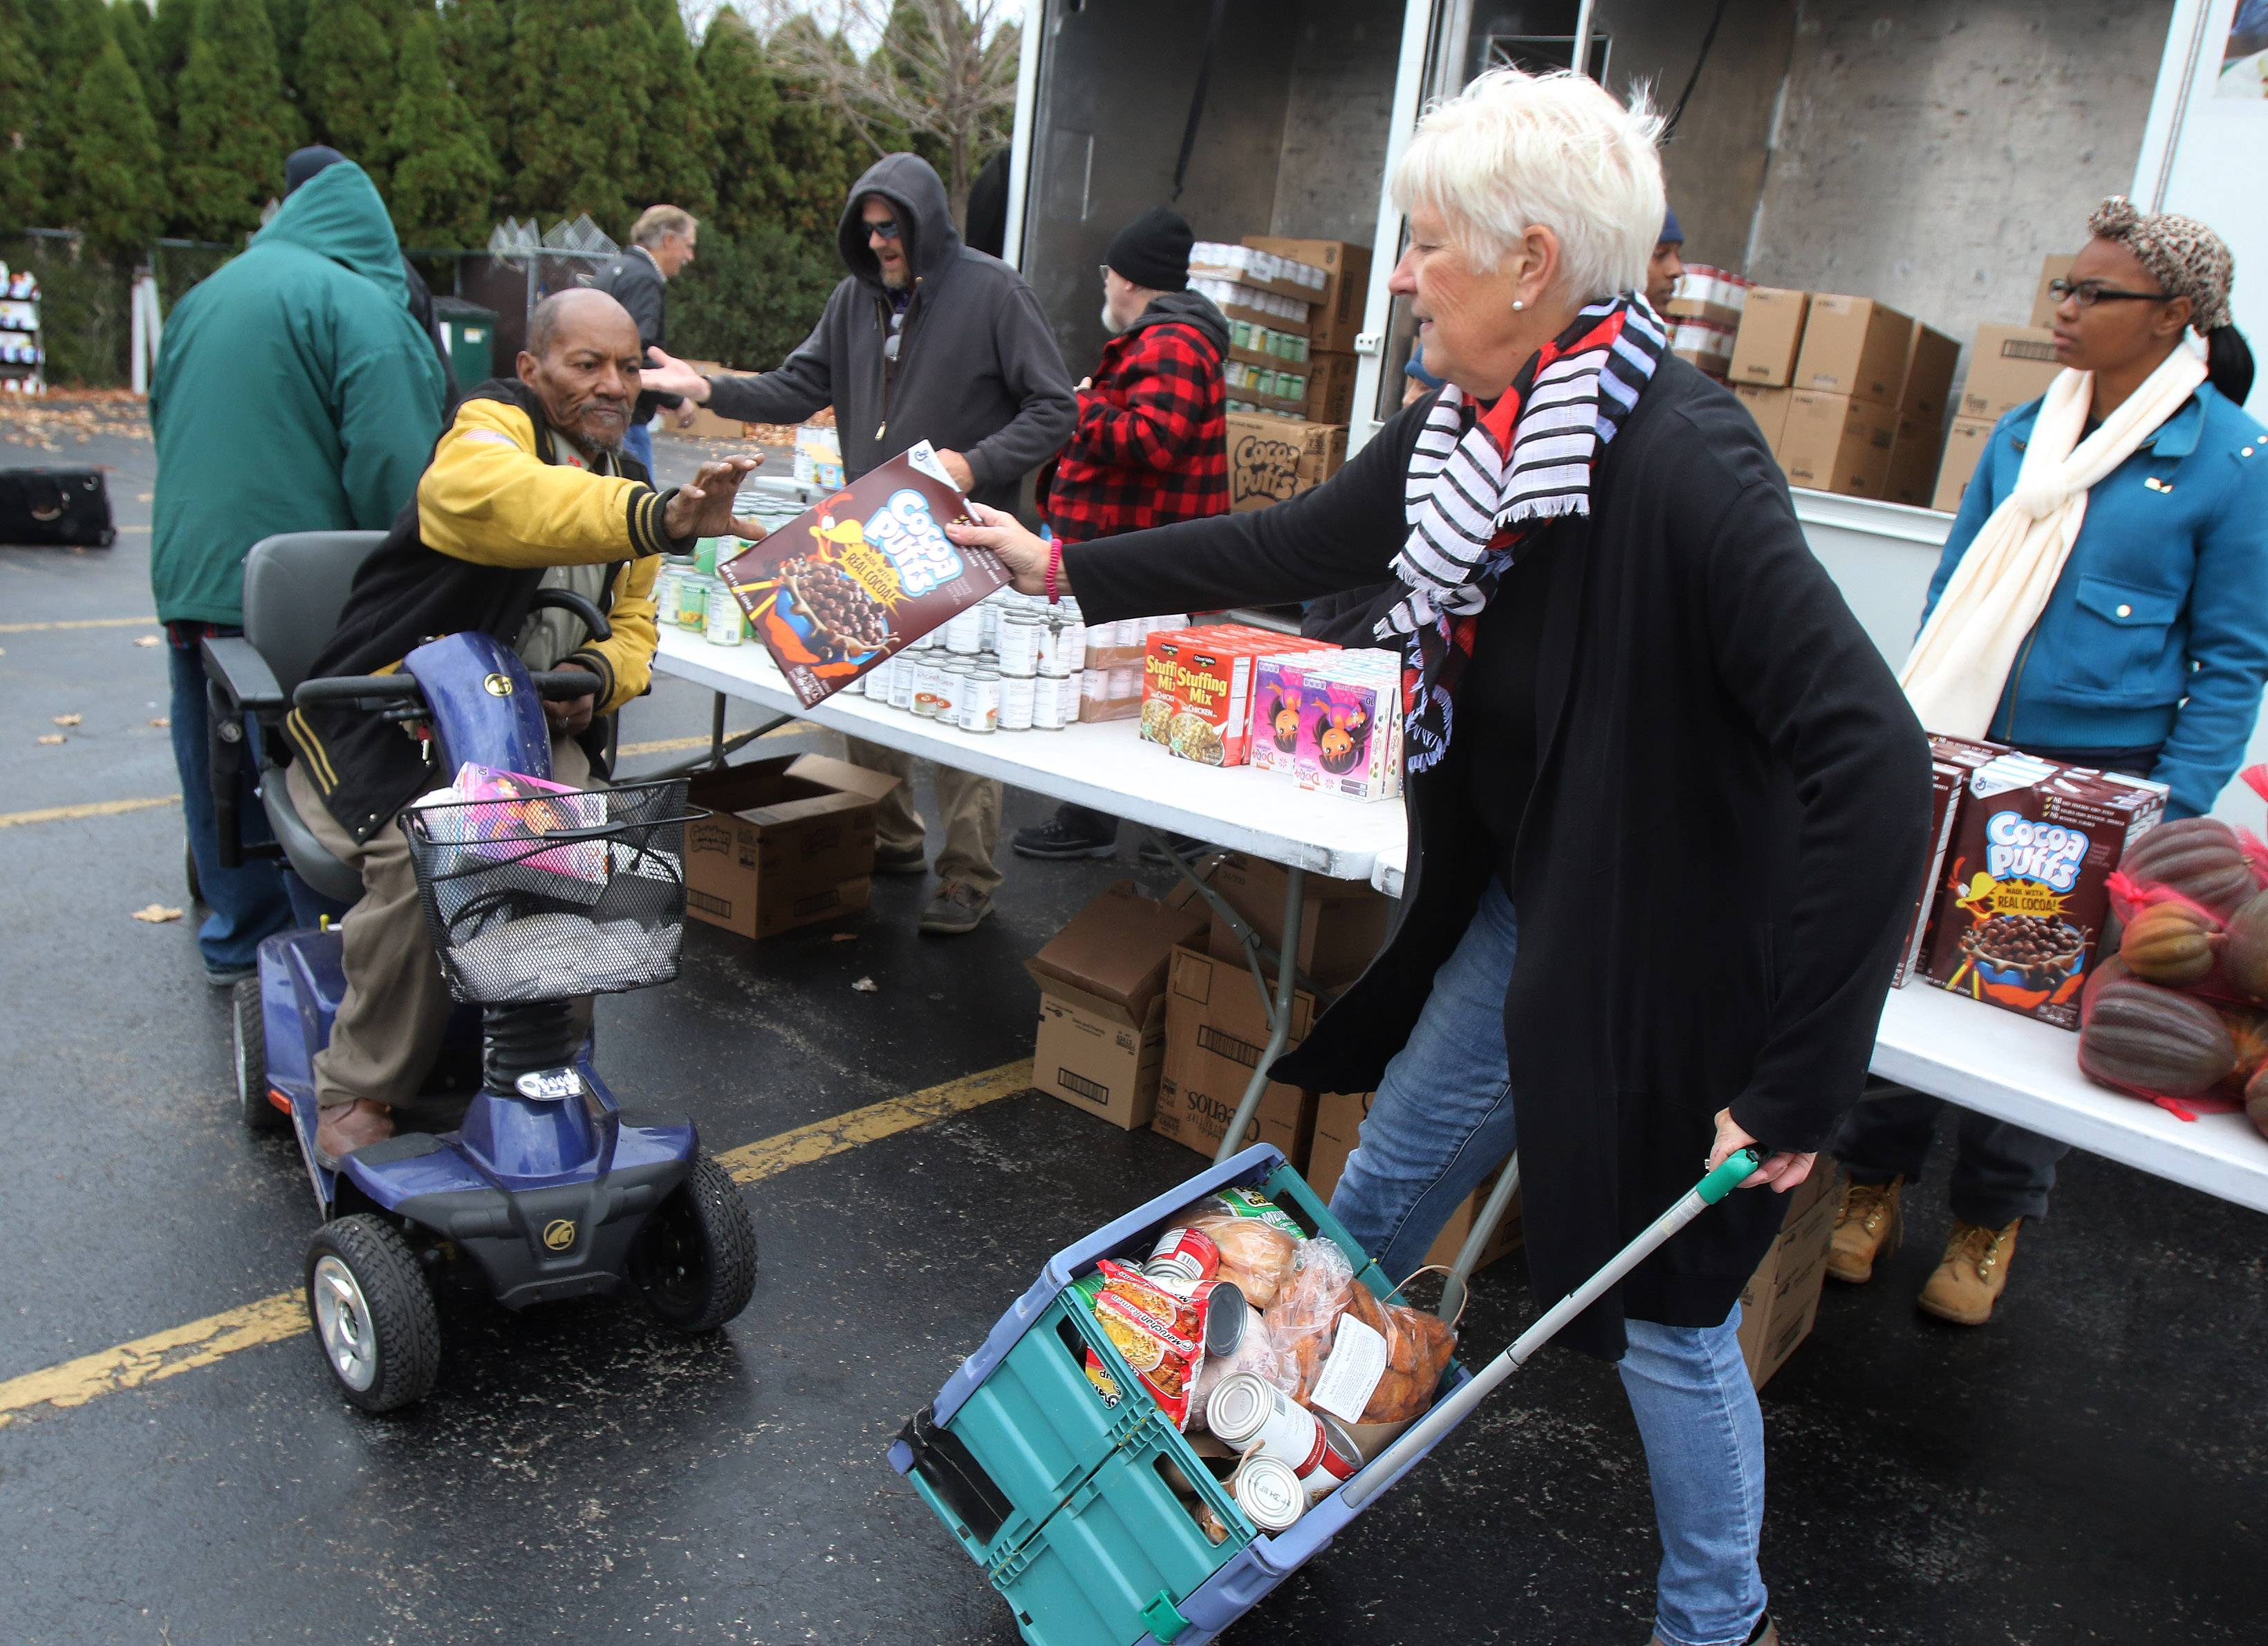 Midwest Veterans Closet Food Pantry Director Barb Karacic, right, helps Johnnie Beard of North Chicago collect food Tuesday in North Chicago. The organization and the Northern Illinois Food Bank provided food and coats and clothing to military veterans and their families.